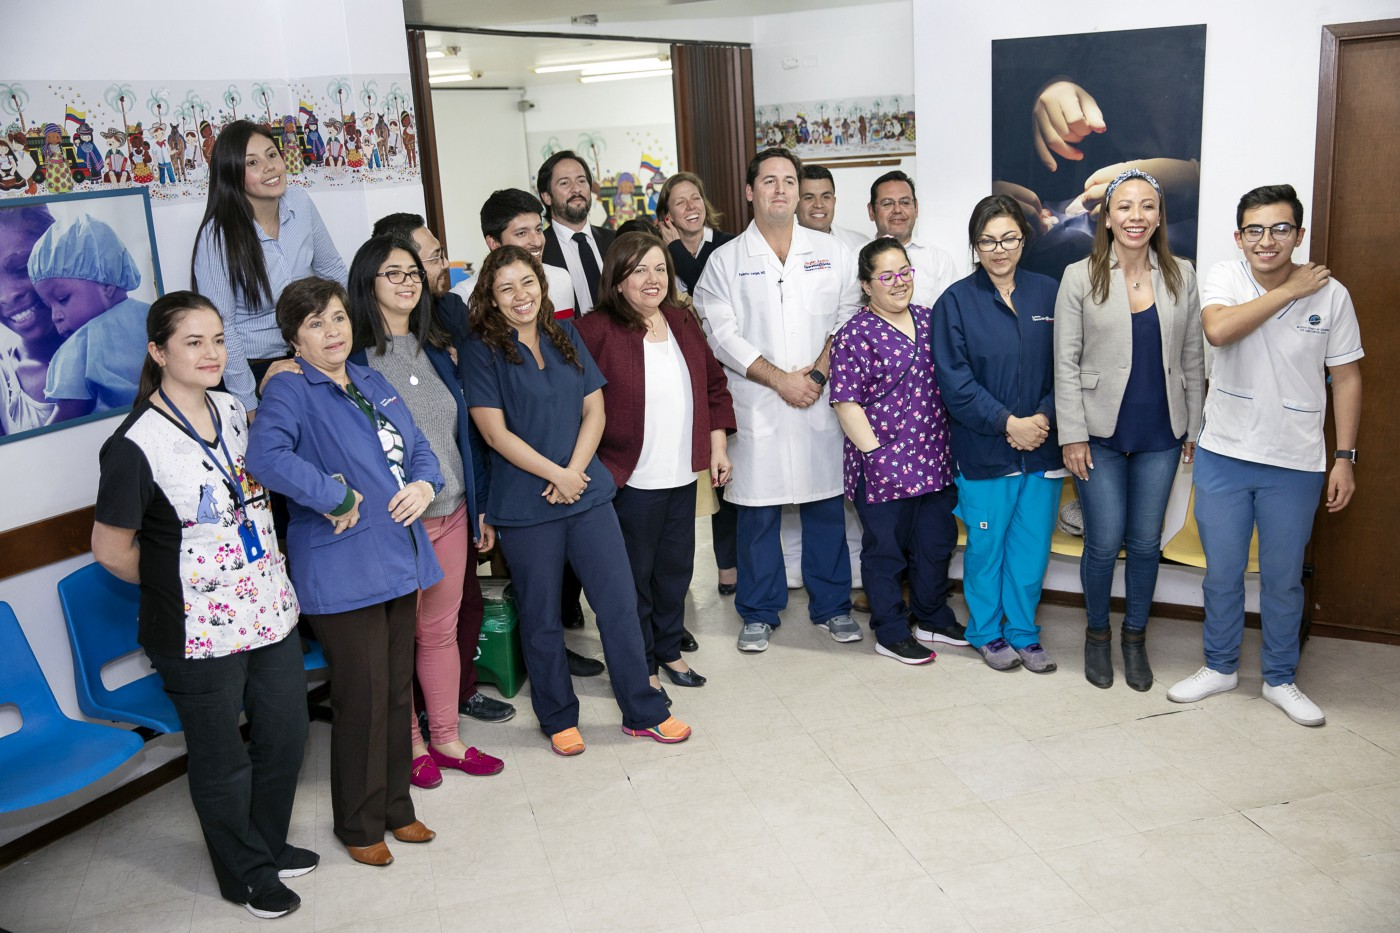 A group photo of Operation Smile Colombia volunteers and staff.